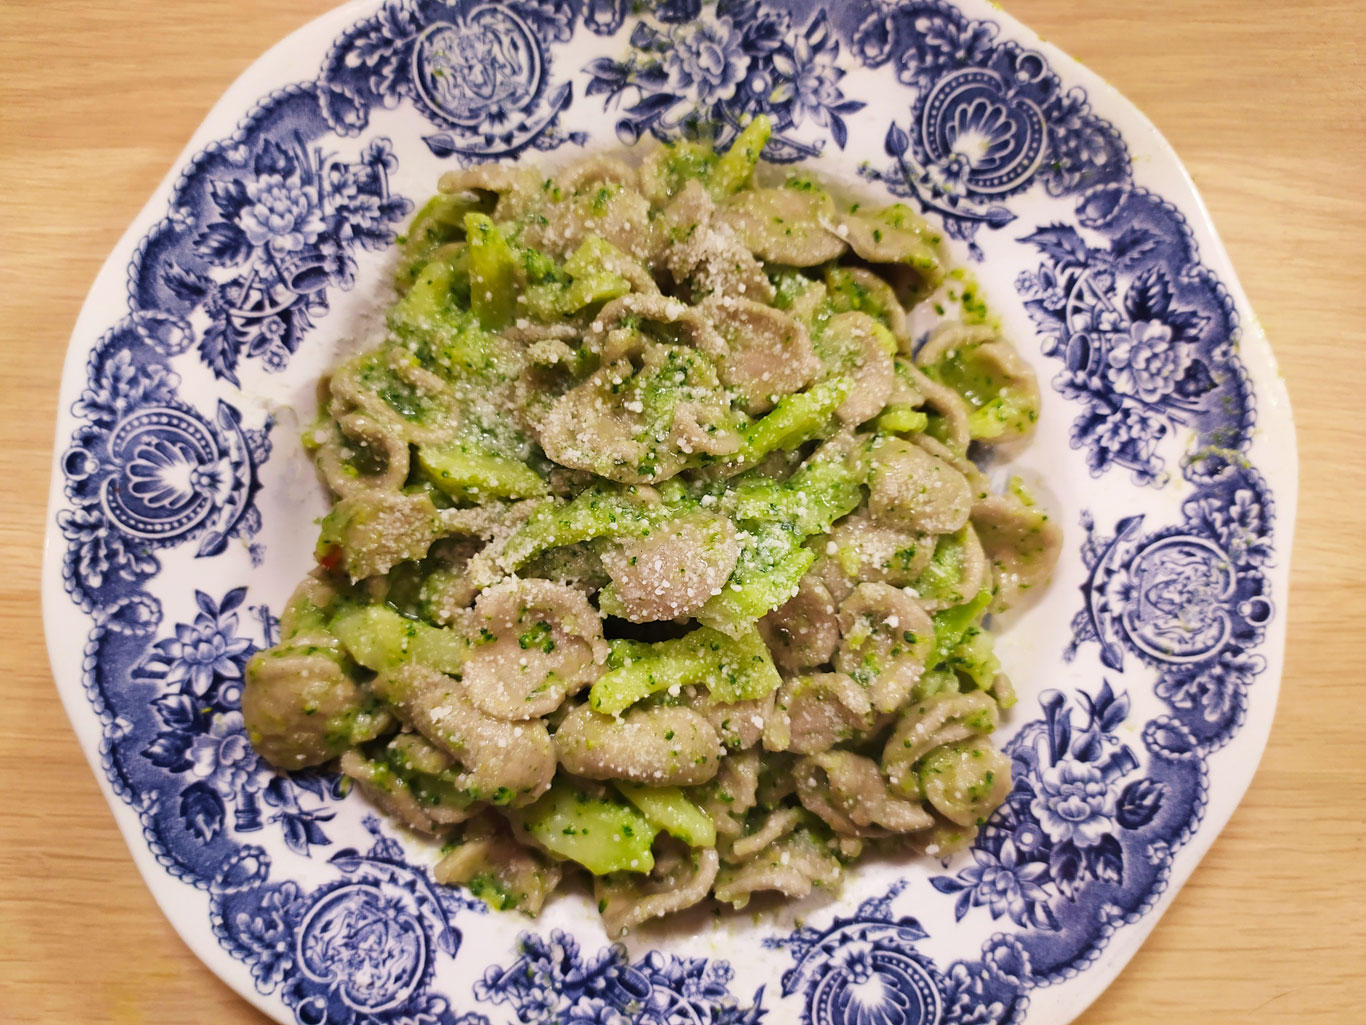 Orecchiette with Broccoli cream and pecorino cheese